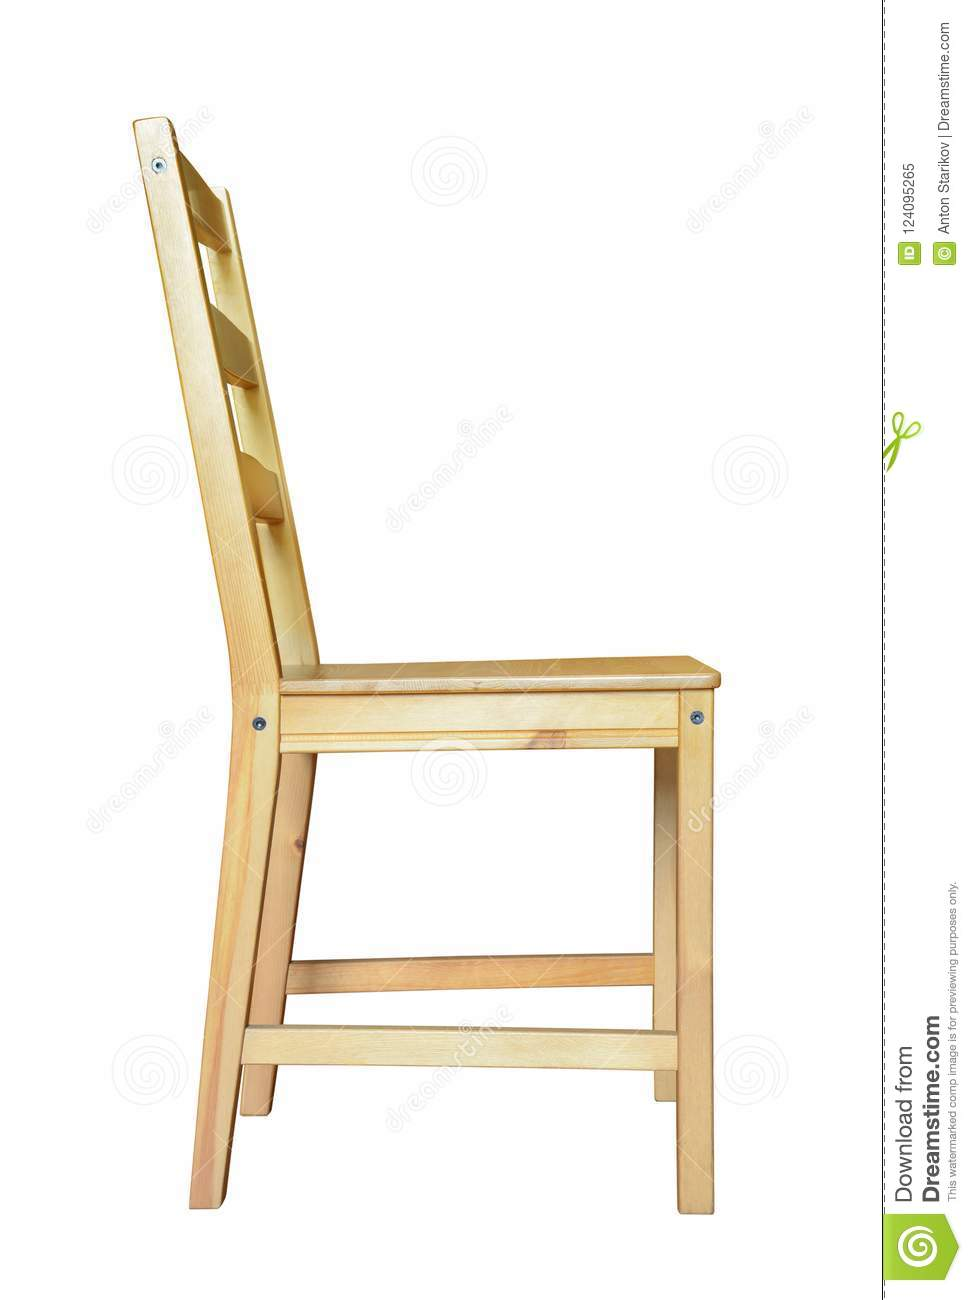 Download Side View Of Wooden Chair Stock Image. Image Of Furniture    124095265